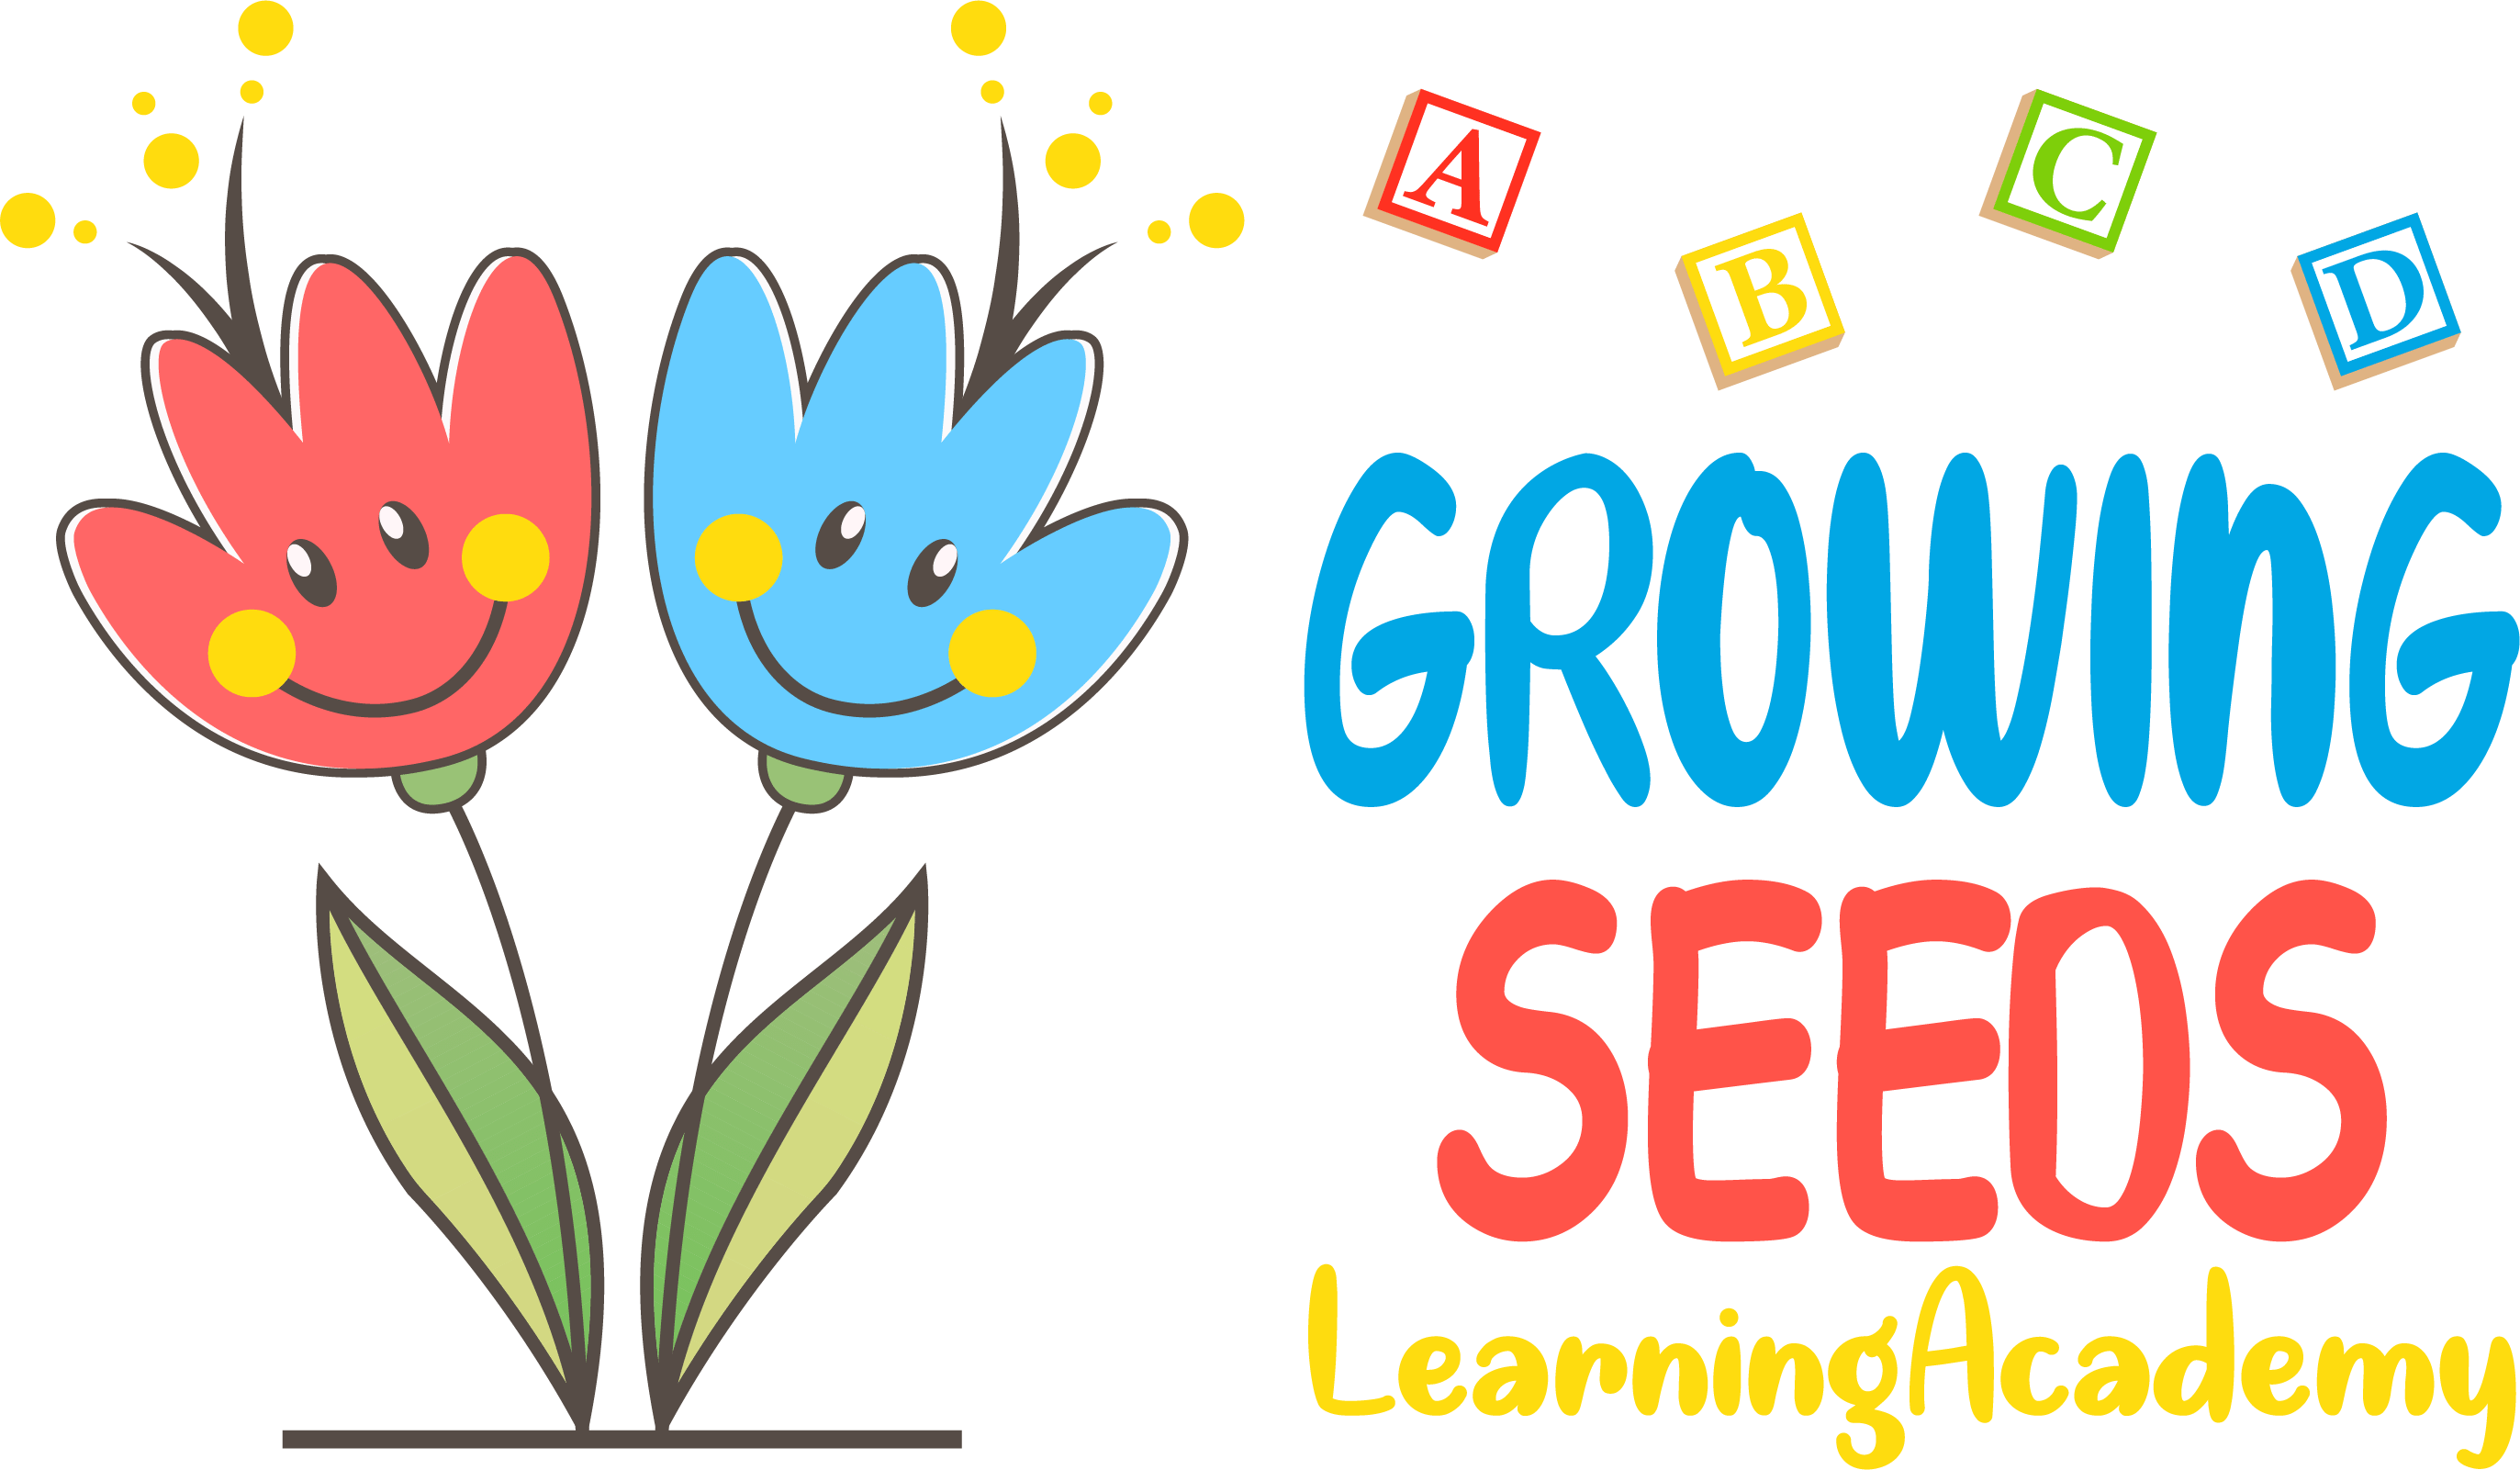 Growing Seeds Learning Academy